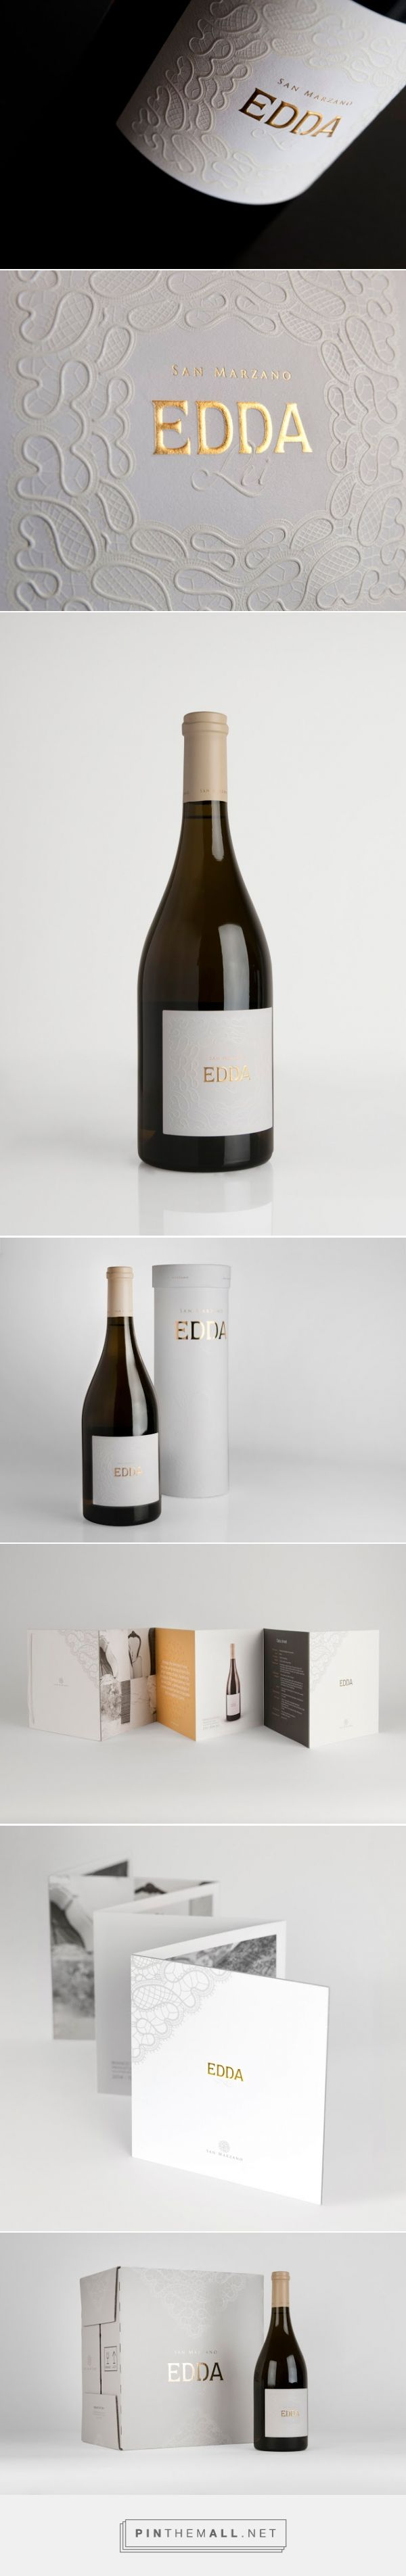 EDDA on Packaging of the World - Creative Package Design Gallery - created via https://pinthemall.net